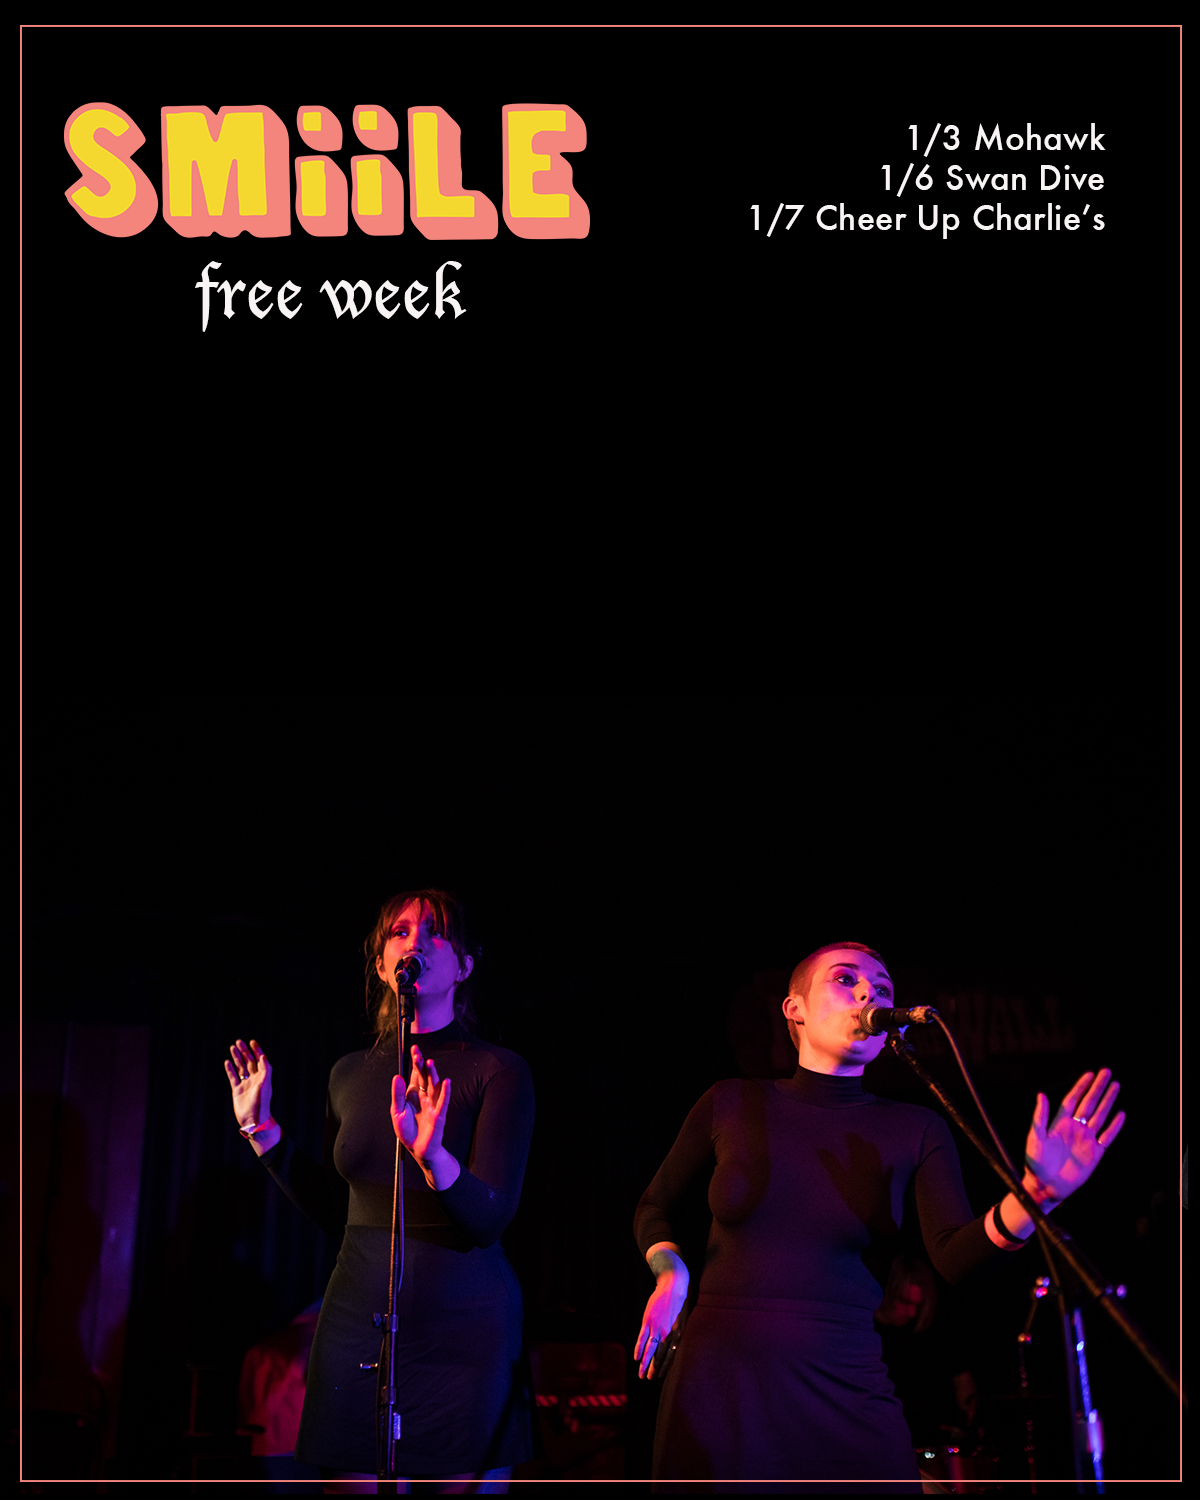 smiile free week poster 0118 .png